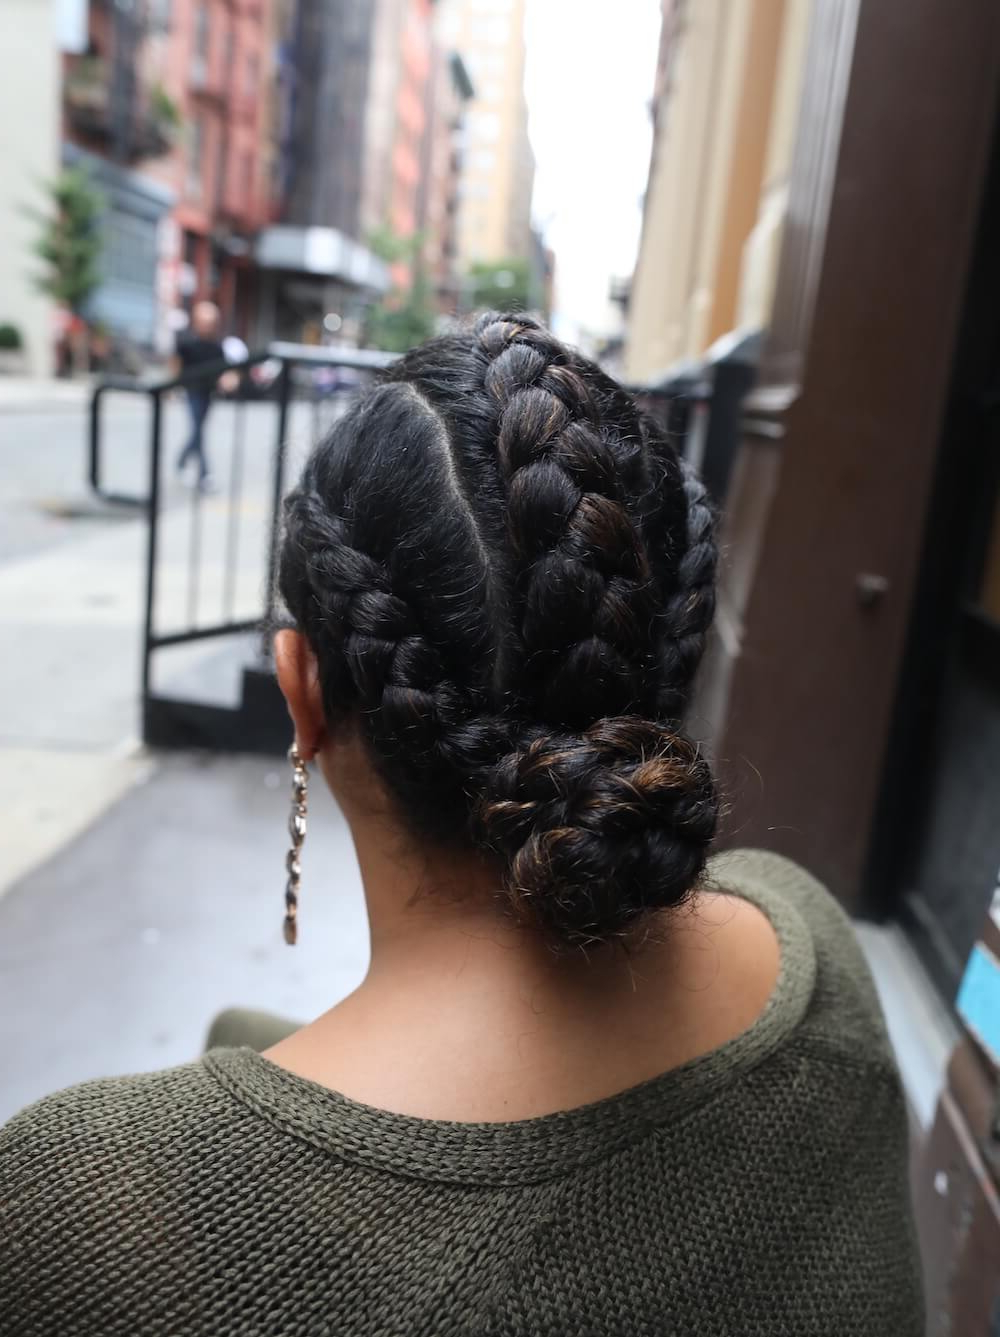 Most Recent Secured Wrapping Braided Hairstyles In Devacurl 101: Different Ways On How To Braid Curly Hair (View 10 of 20)